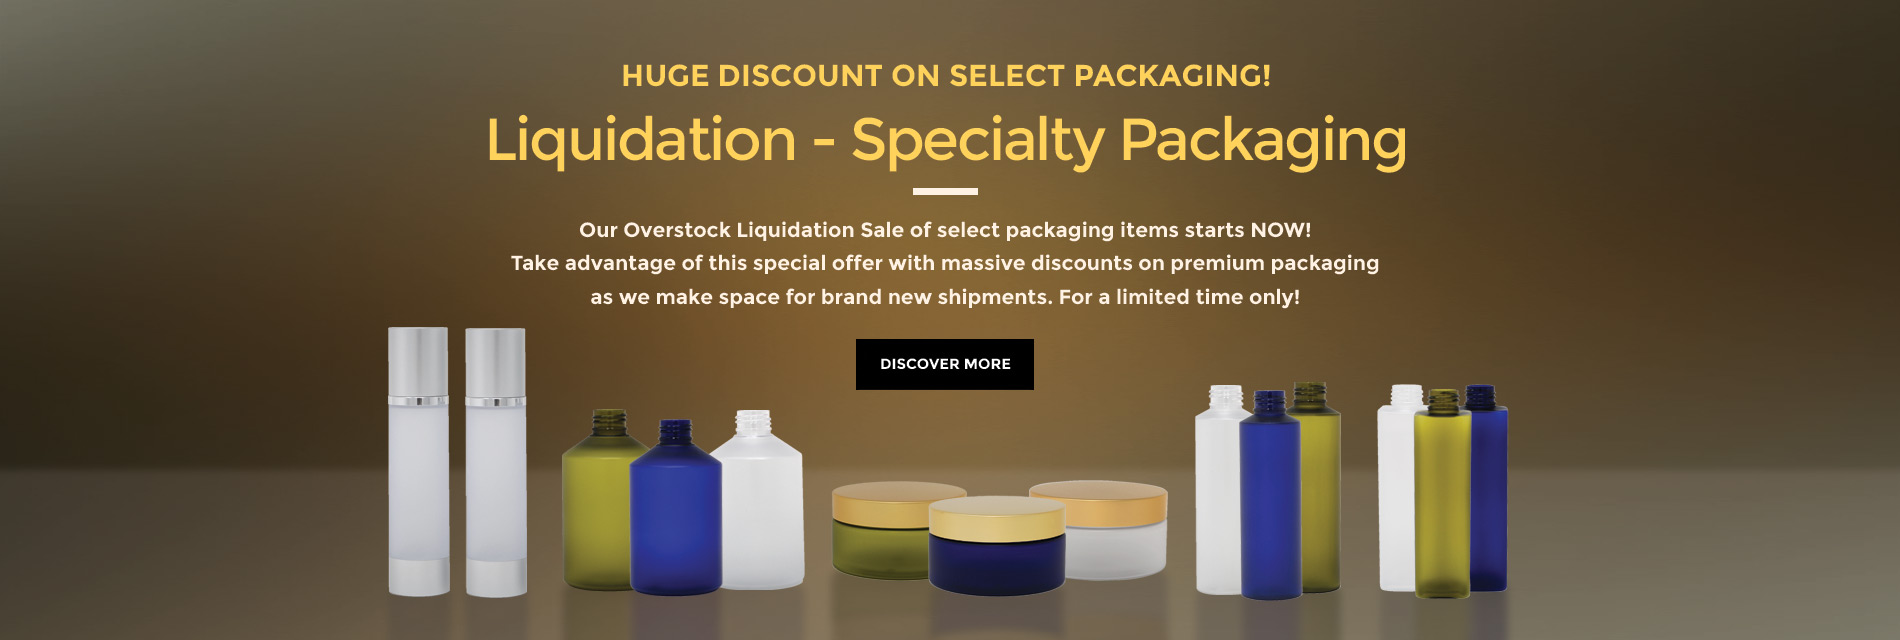 Liquidation Sale on Select Premium Packaging Items